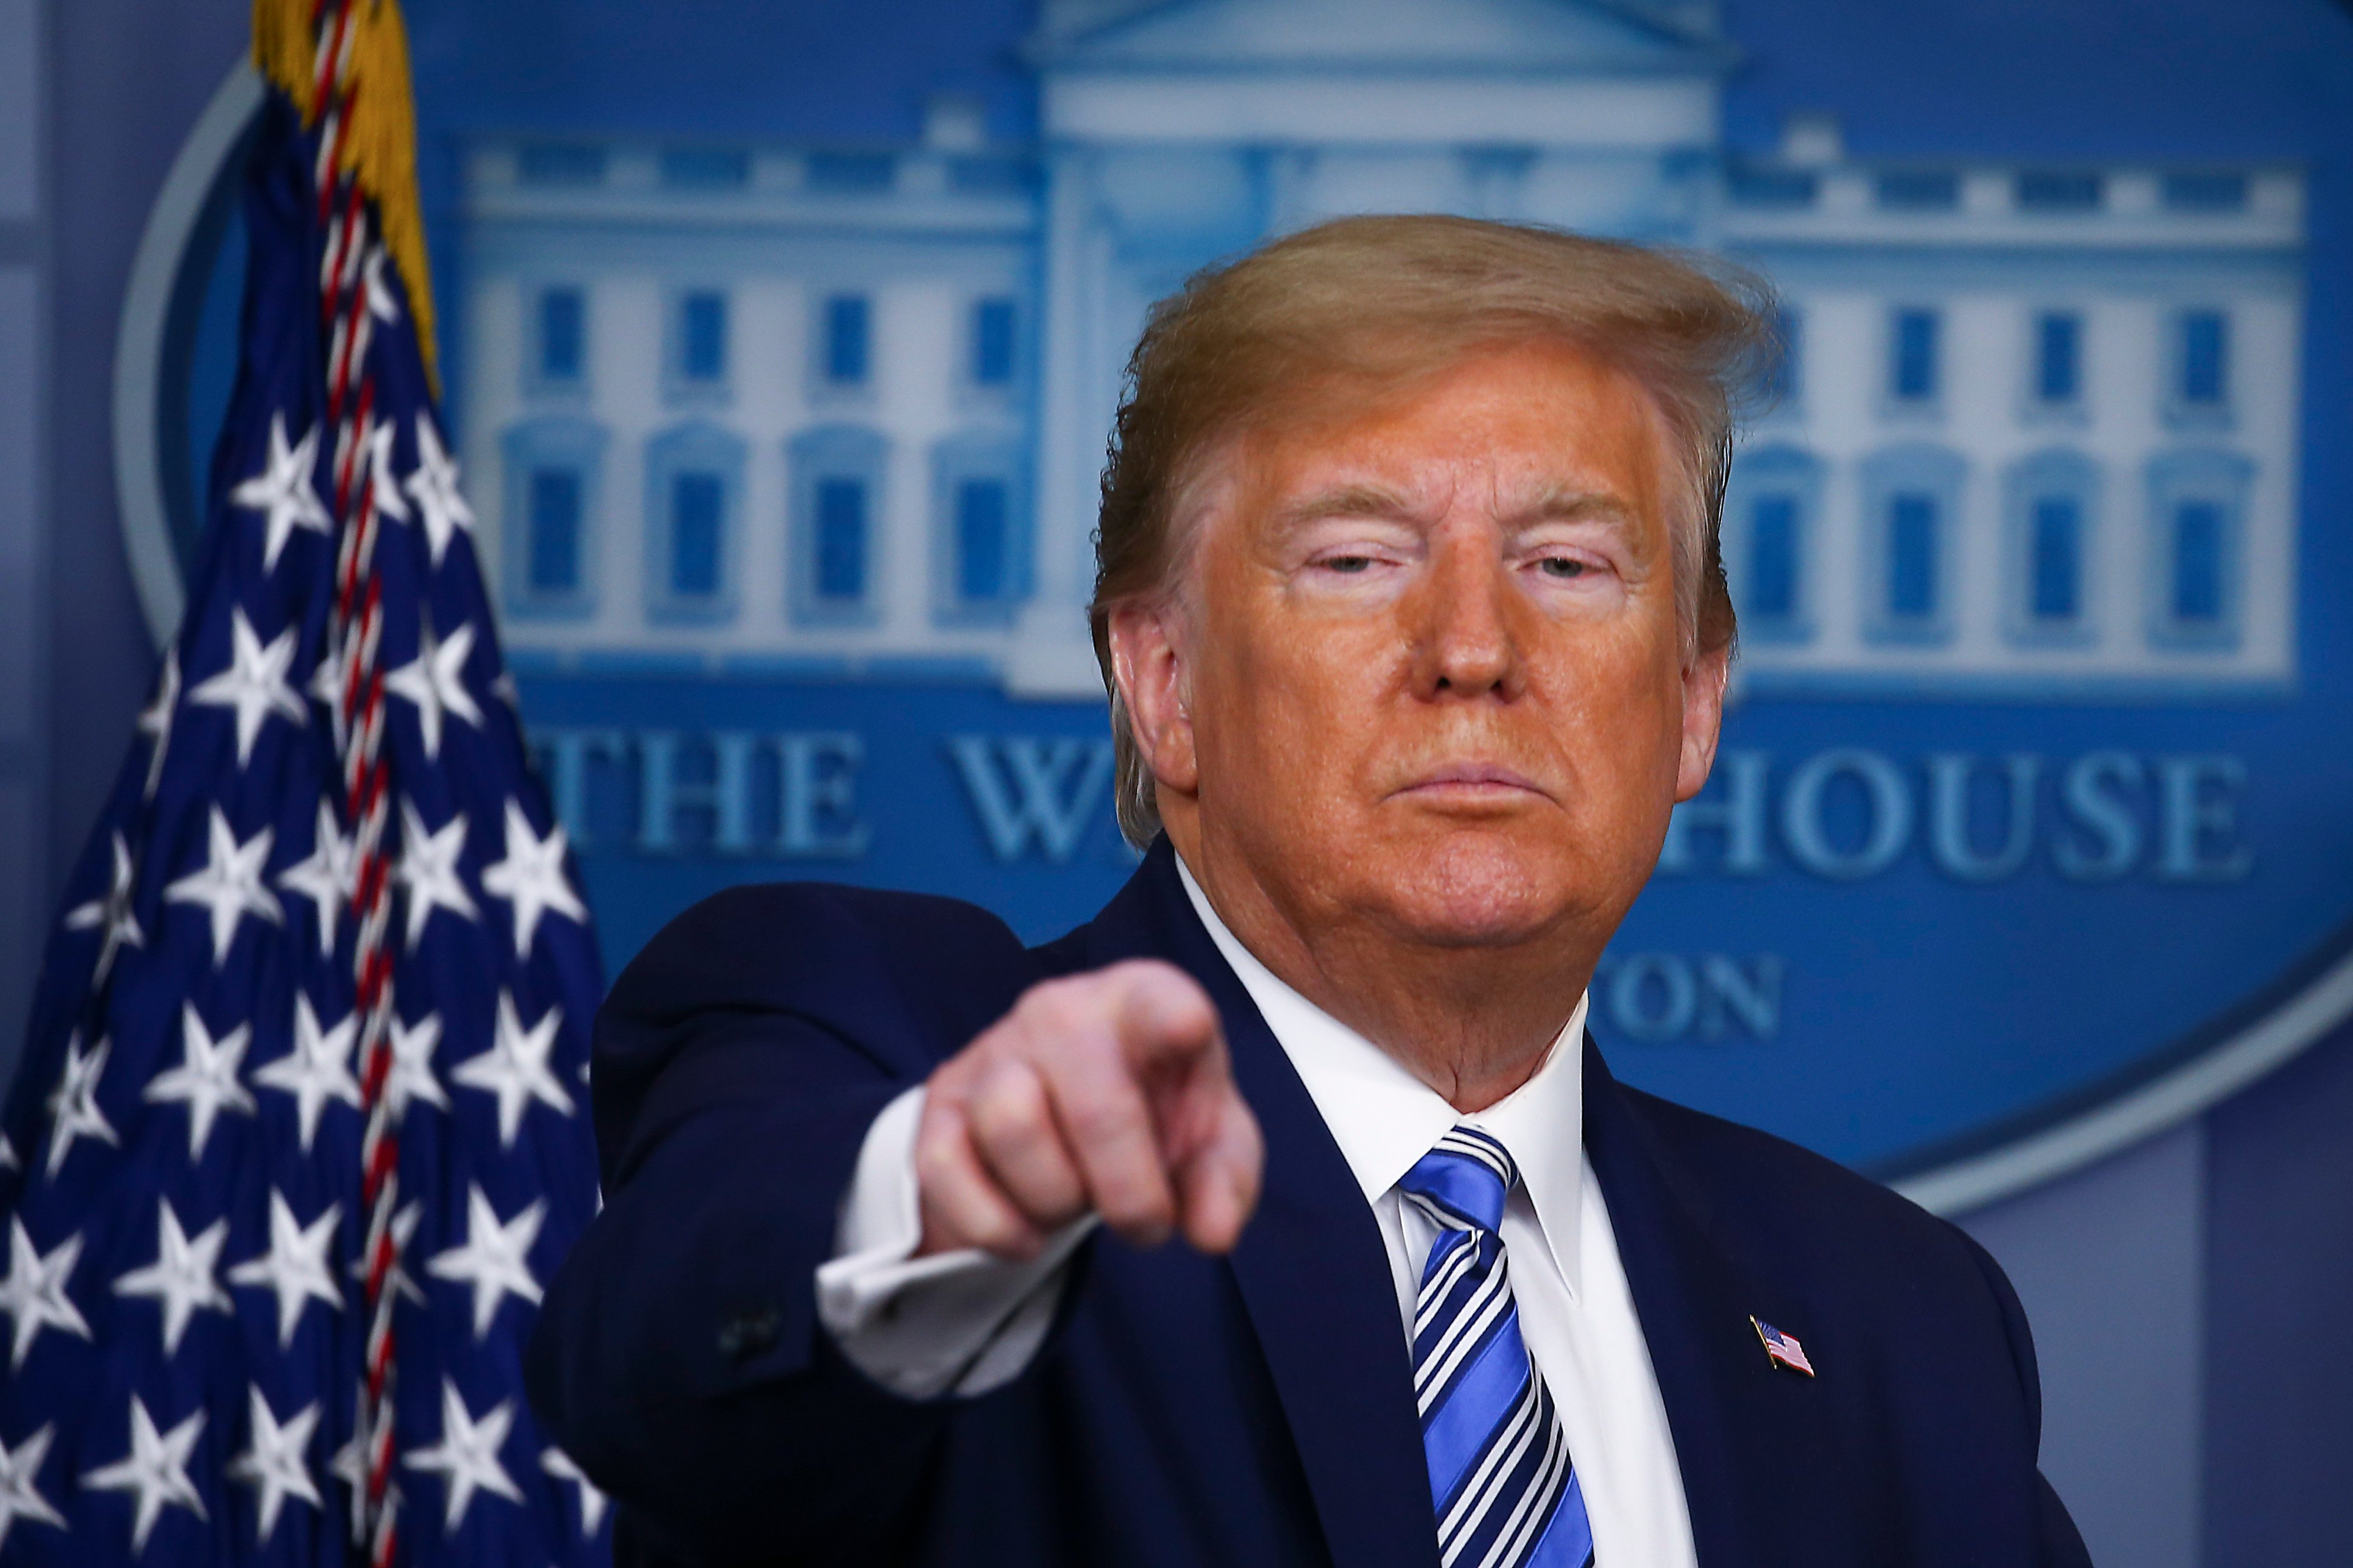 WASHINGTON, DC - APRIL 19: U.S. President Donald Trump takes questions at the daily coronavirus briefing at the White House on April 19, 2020 in Washington, DC. New York state will begin the nation's most aggressive COVID-19 antibody testing campaign this week even as some states begin to loosen restrictions amid pressure to restart the economy. (Photo by Tasos Katopodis/Getty Images)